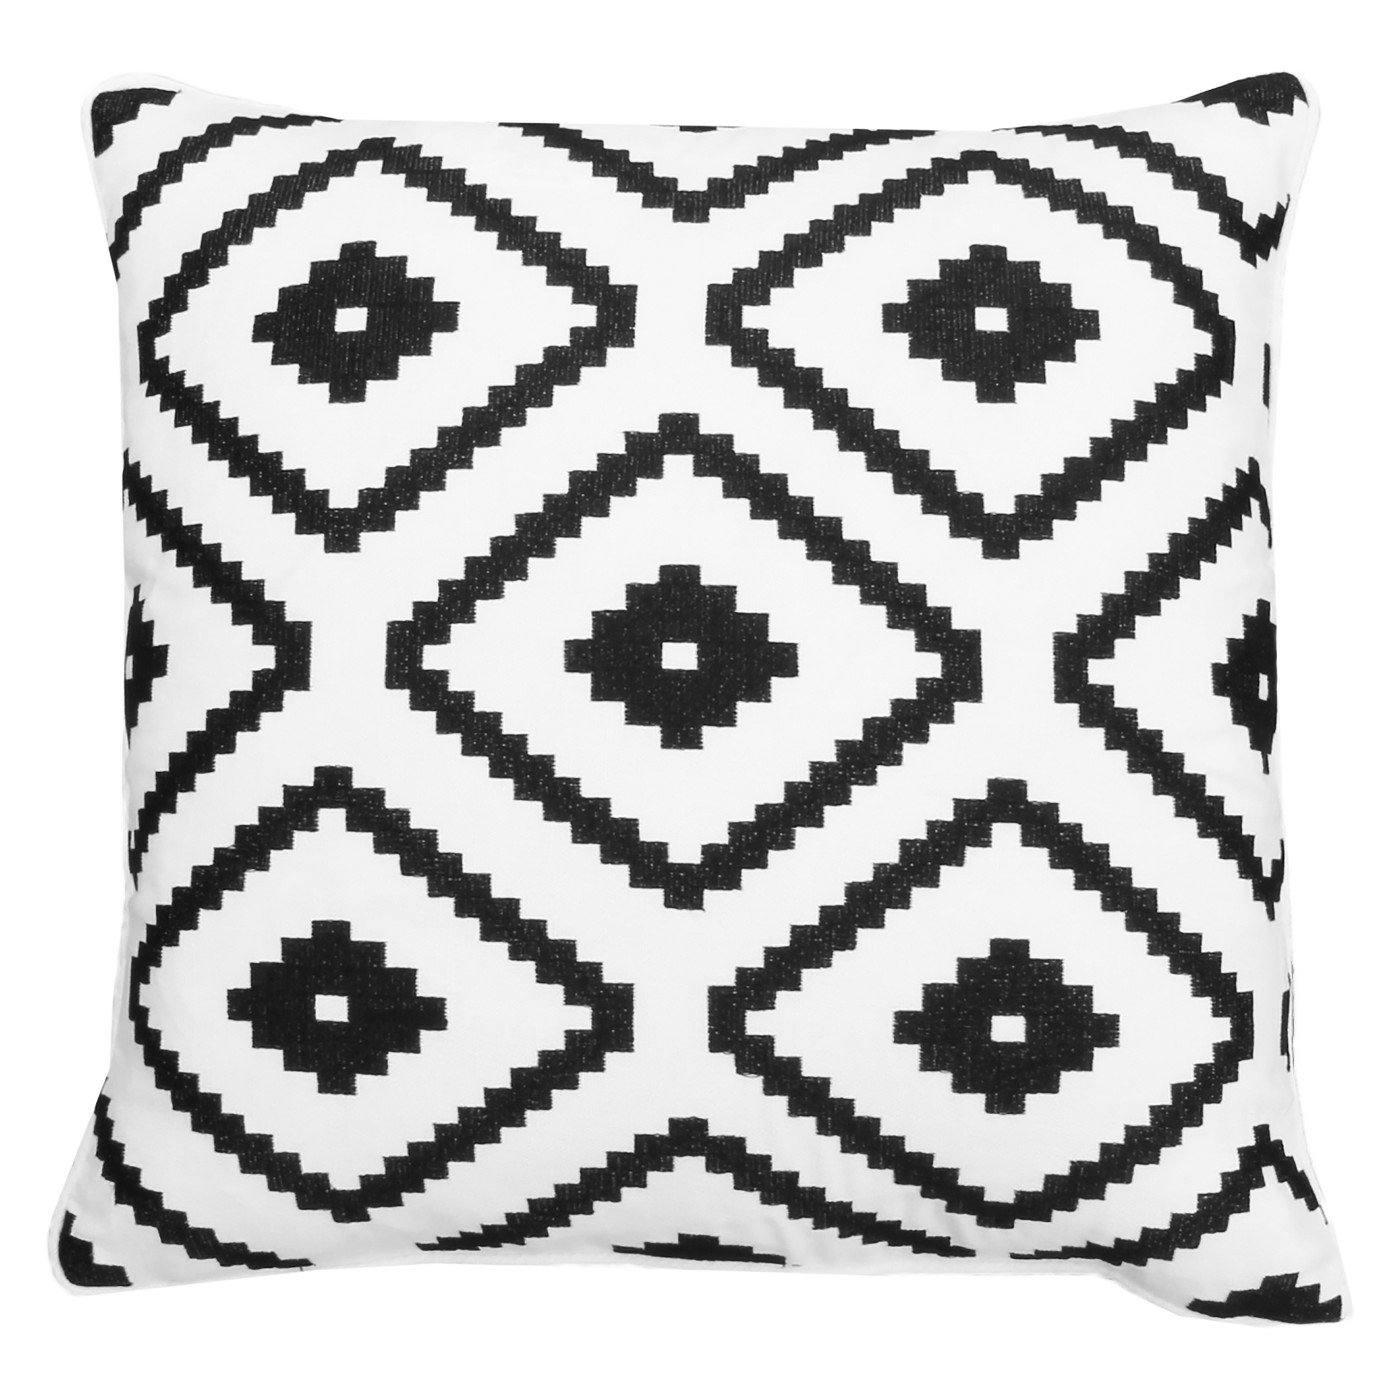 Geometric - A pattern that is displays geometric shapes, typically in a repetitive pattern but may also be asymmetrical.